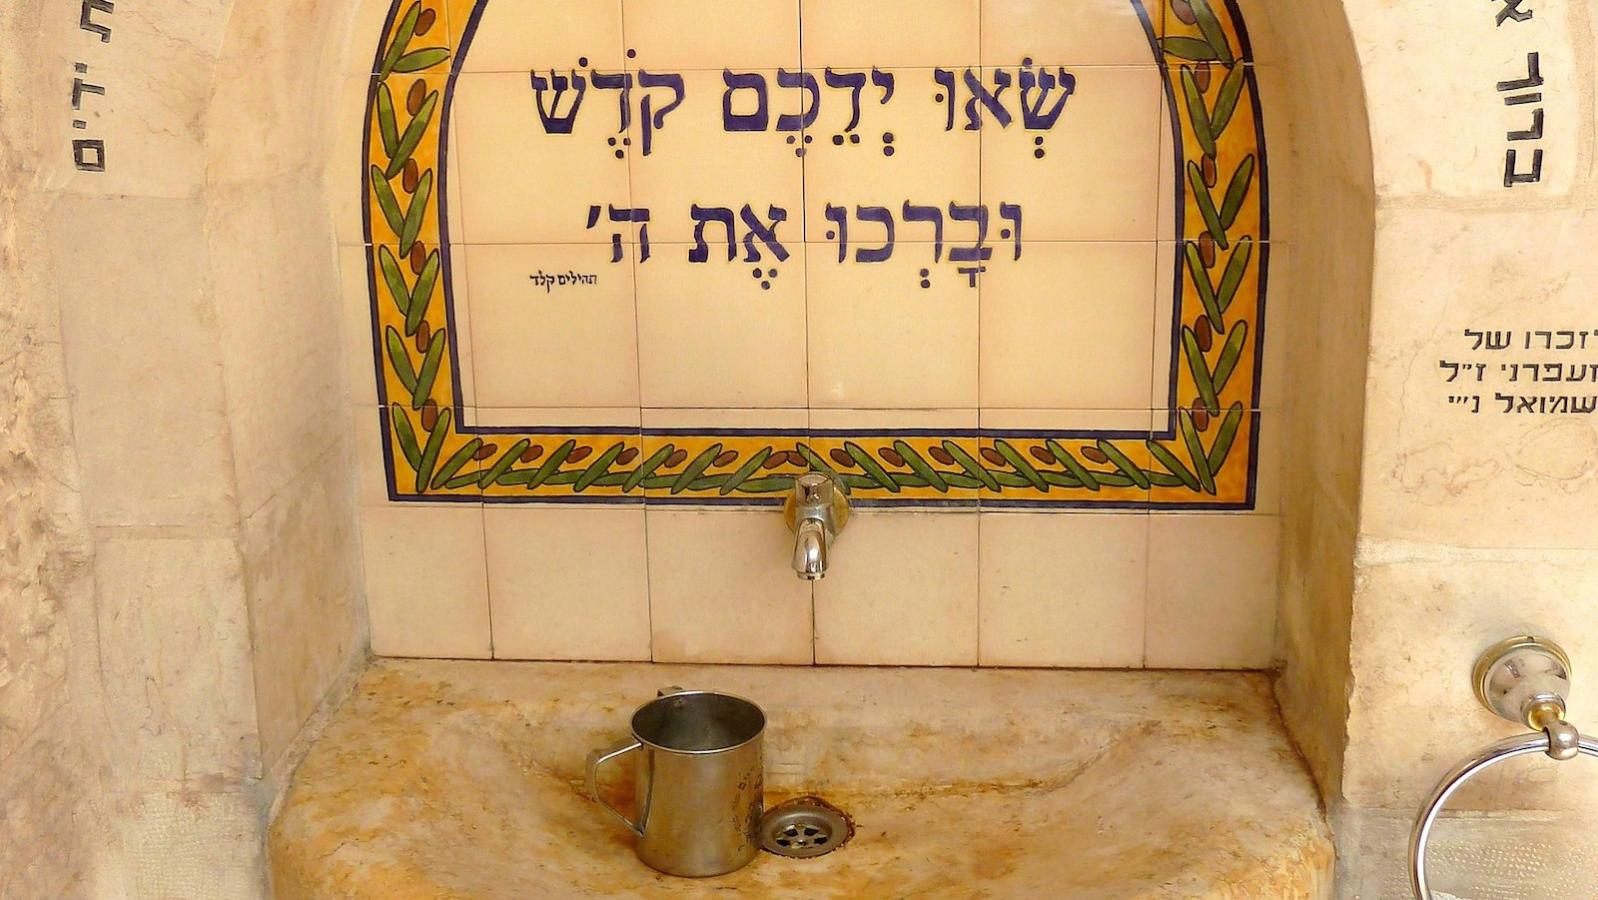 Image result for handwashing ritual before meals in judaism images